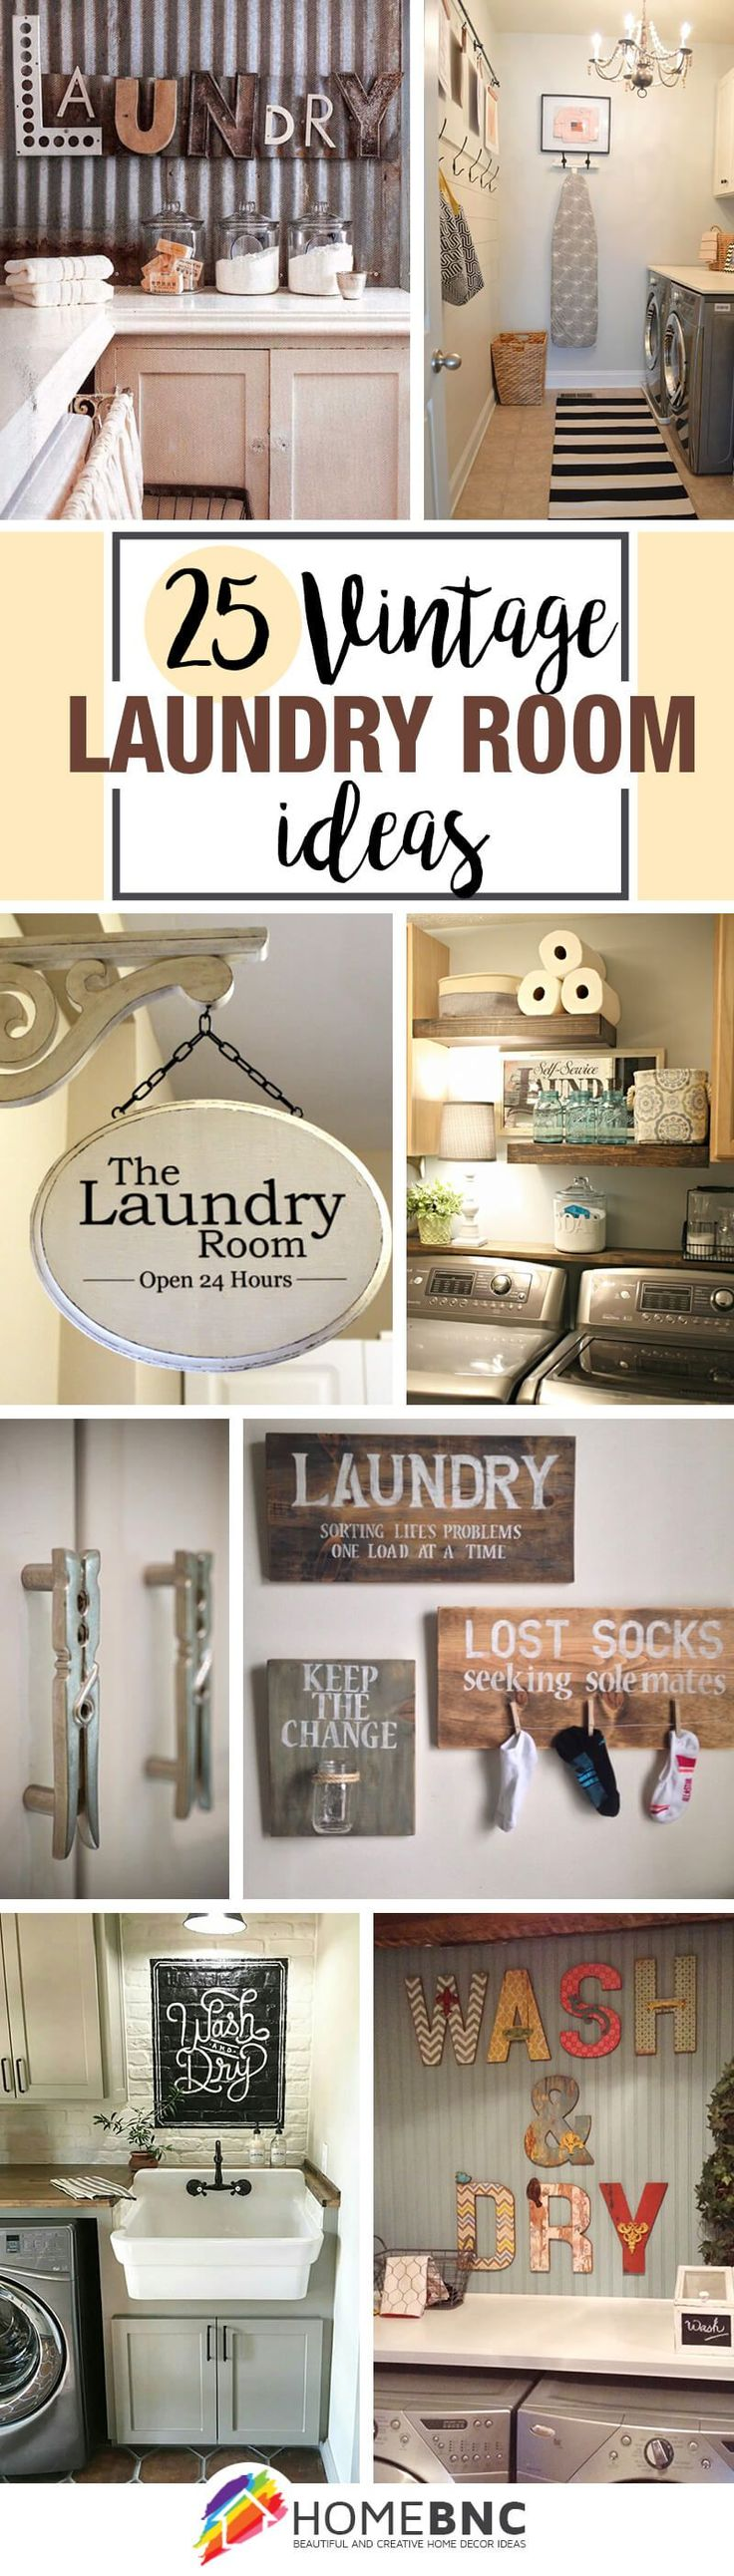 Vintage Laundry Room Decor Best 25 Vintage Laundry Ideas On Pinterest  Vintage Laundry